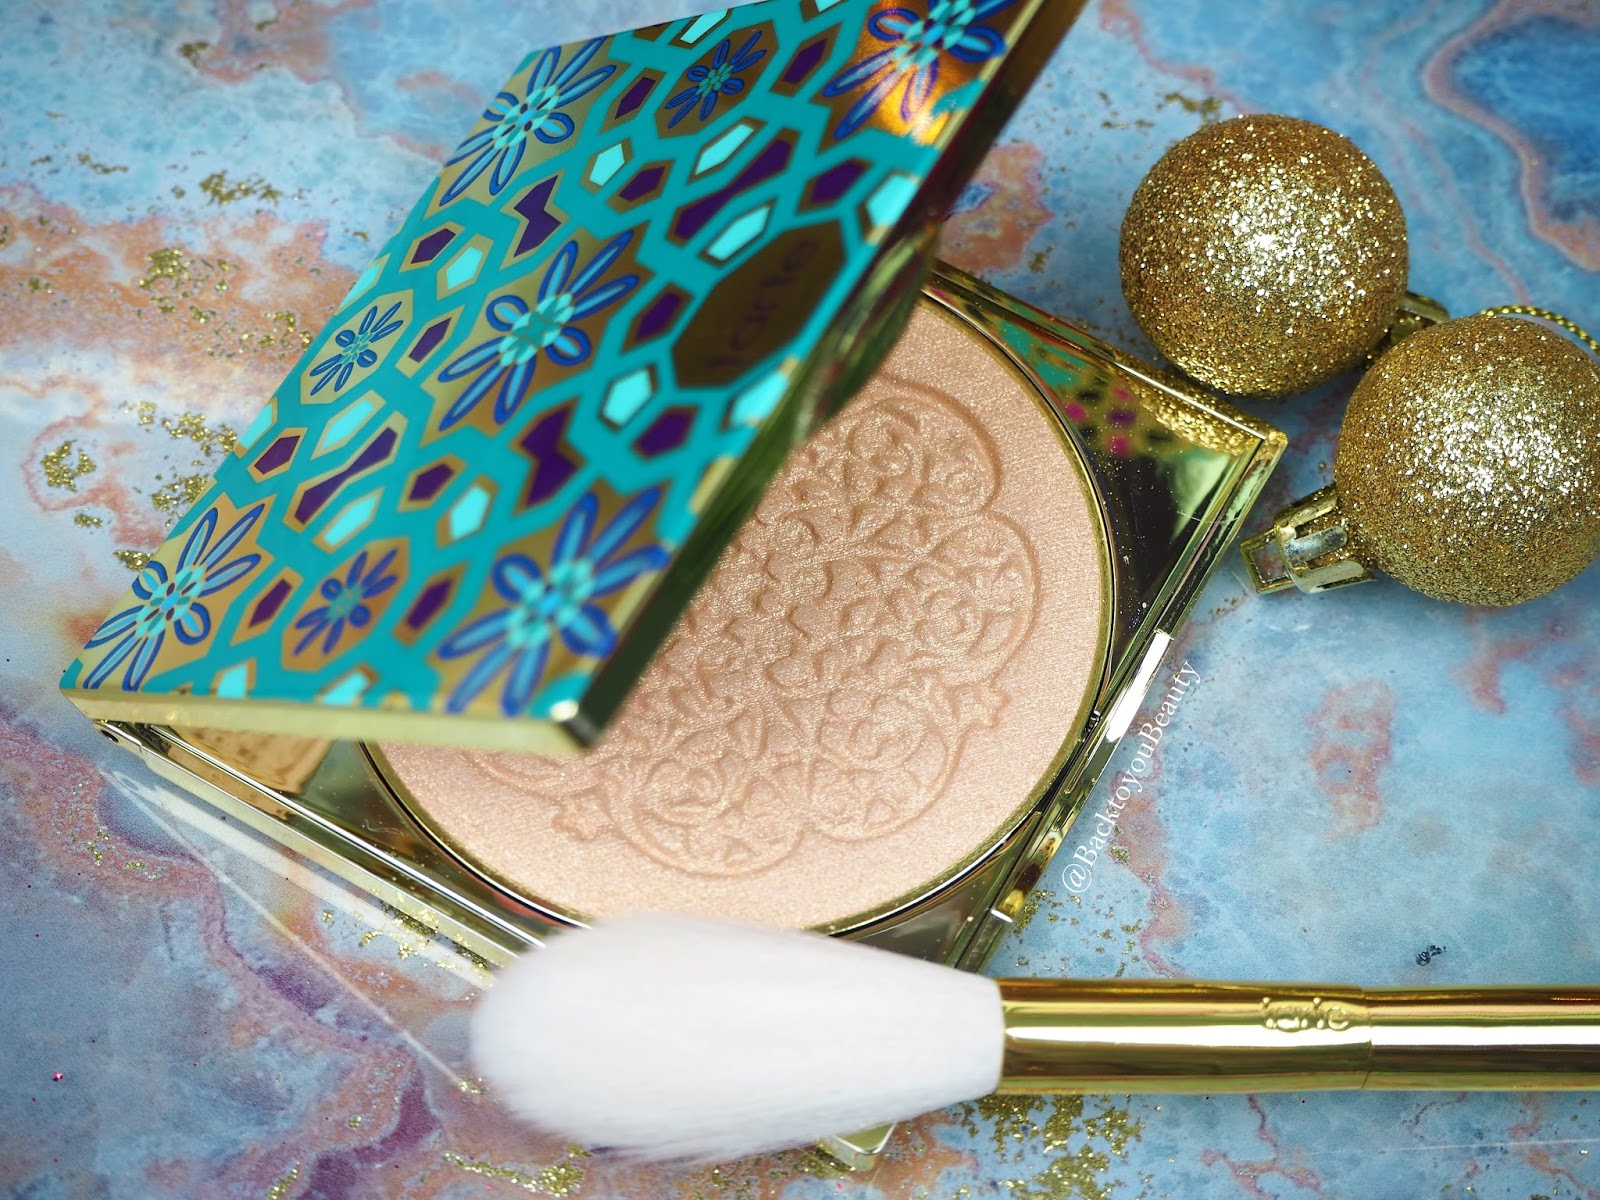 Tarte Limited Edition Goddess Glow Highlight & Brush